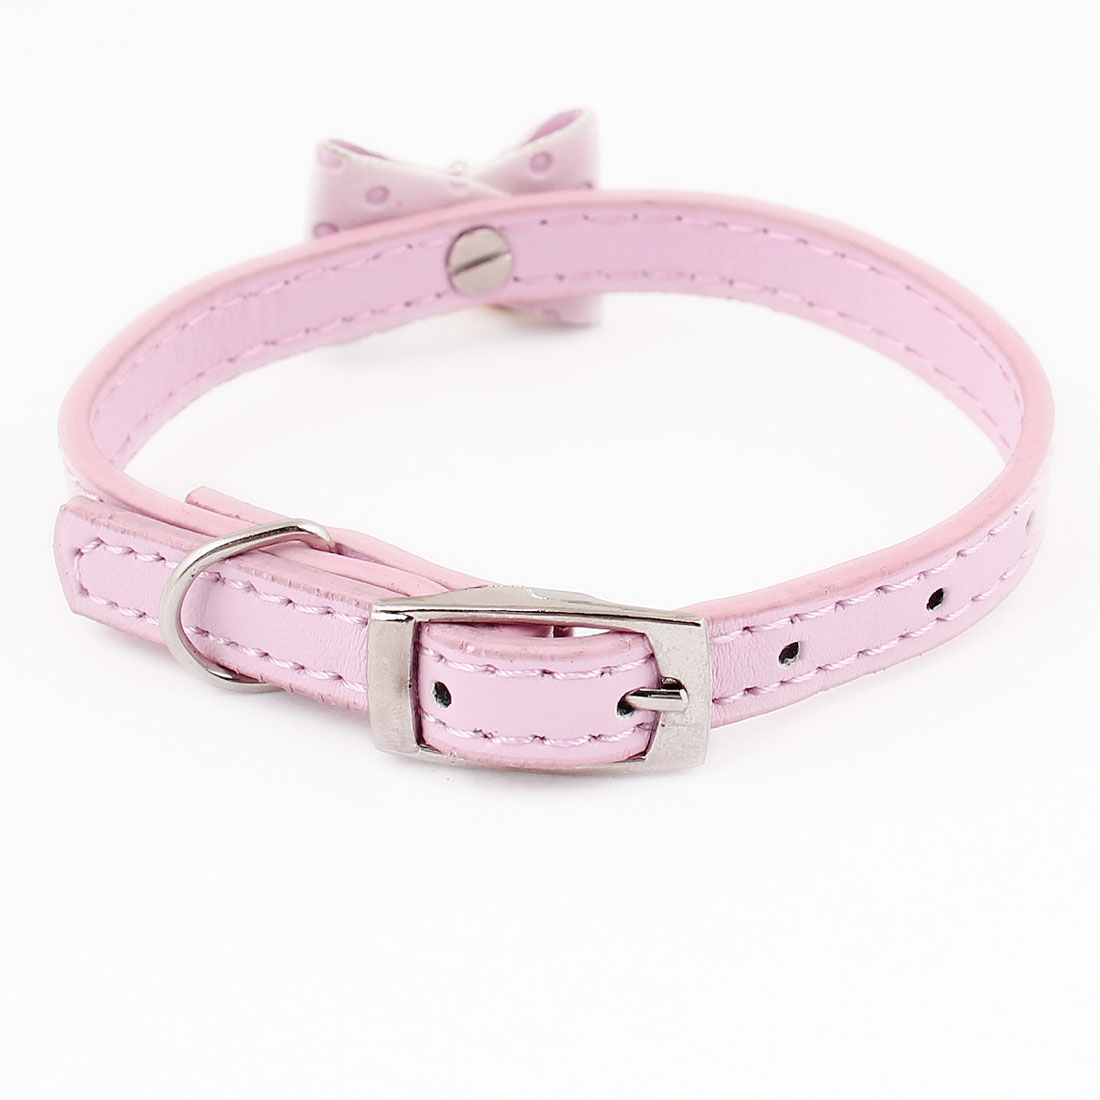 Pin Buckle Bowknot Bell Detail Faux Leather Pet Dog Doggie Collar Belt Pale Pink